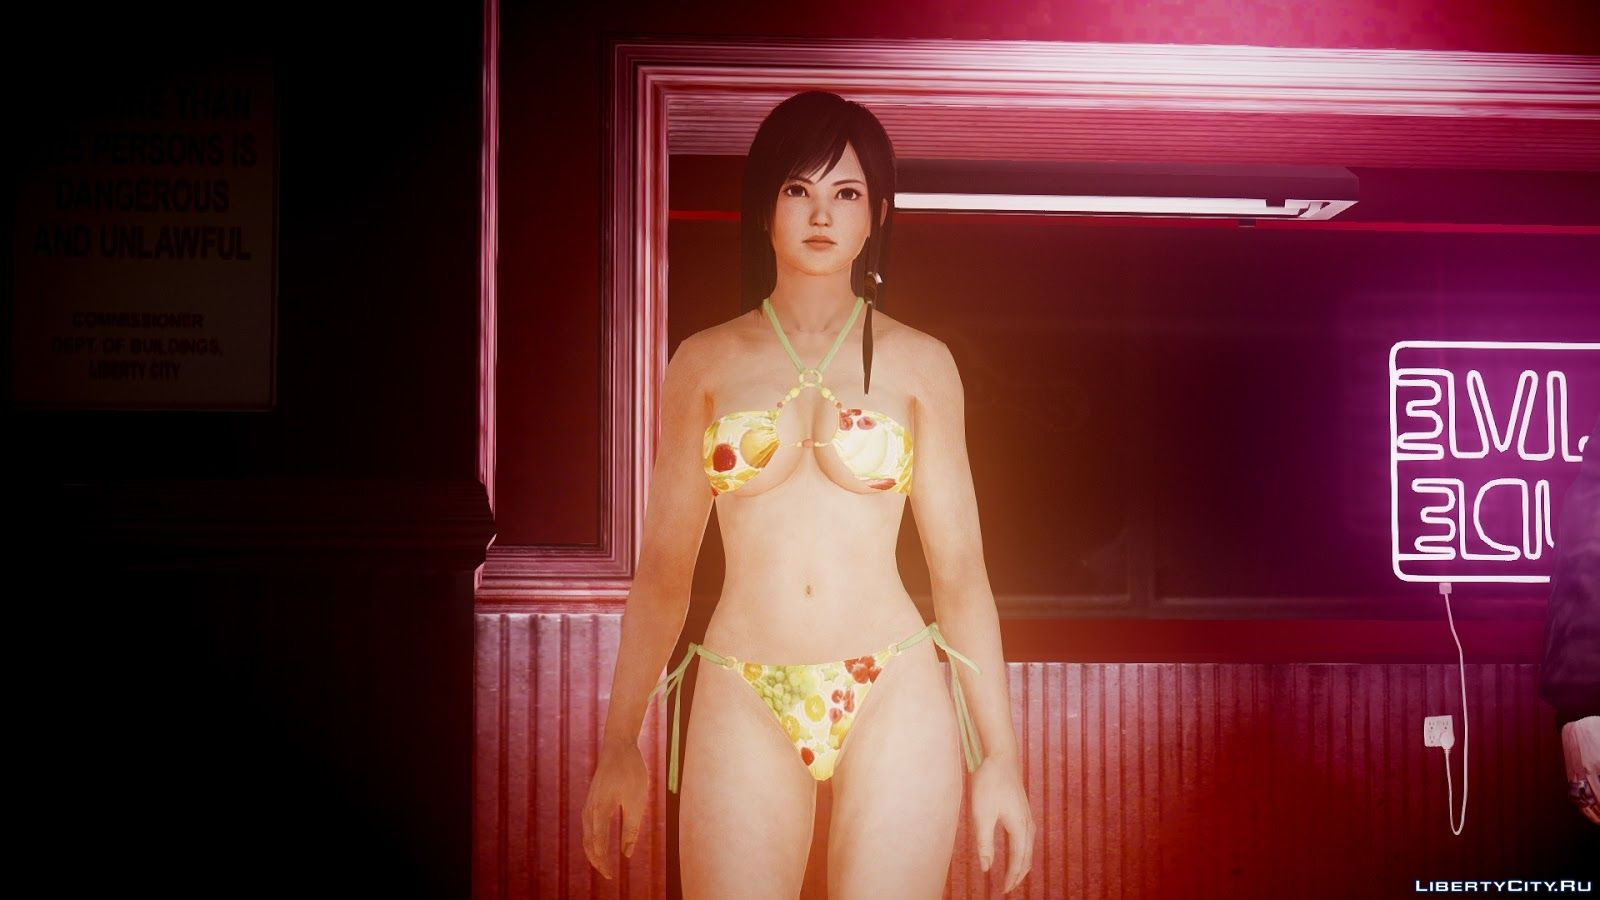 Gta iv nude pics exposed gallery